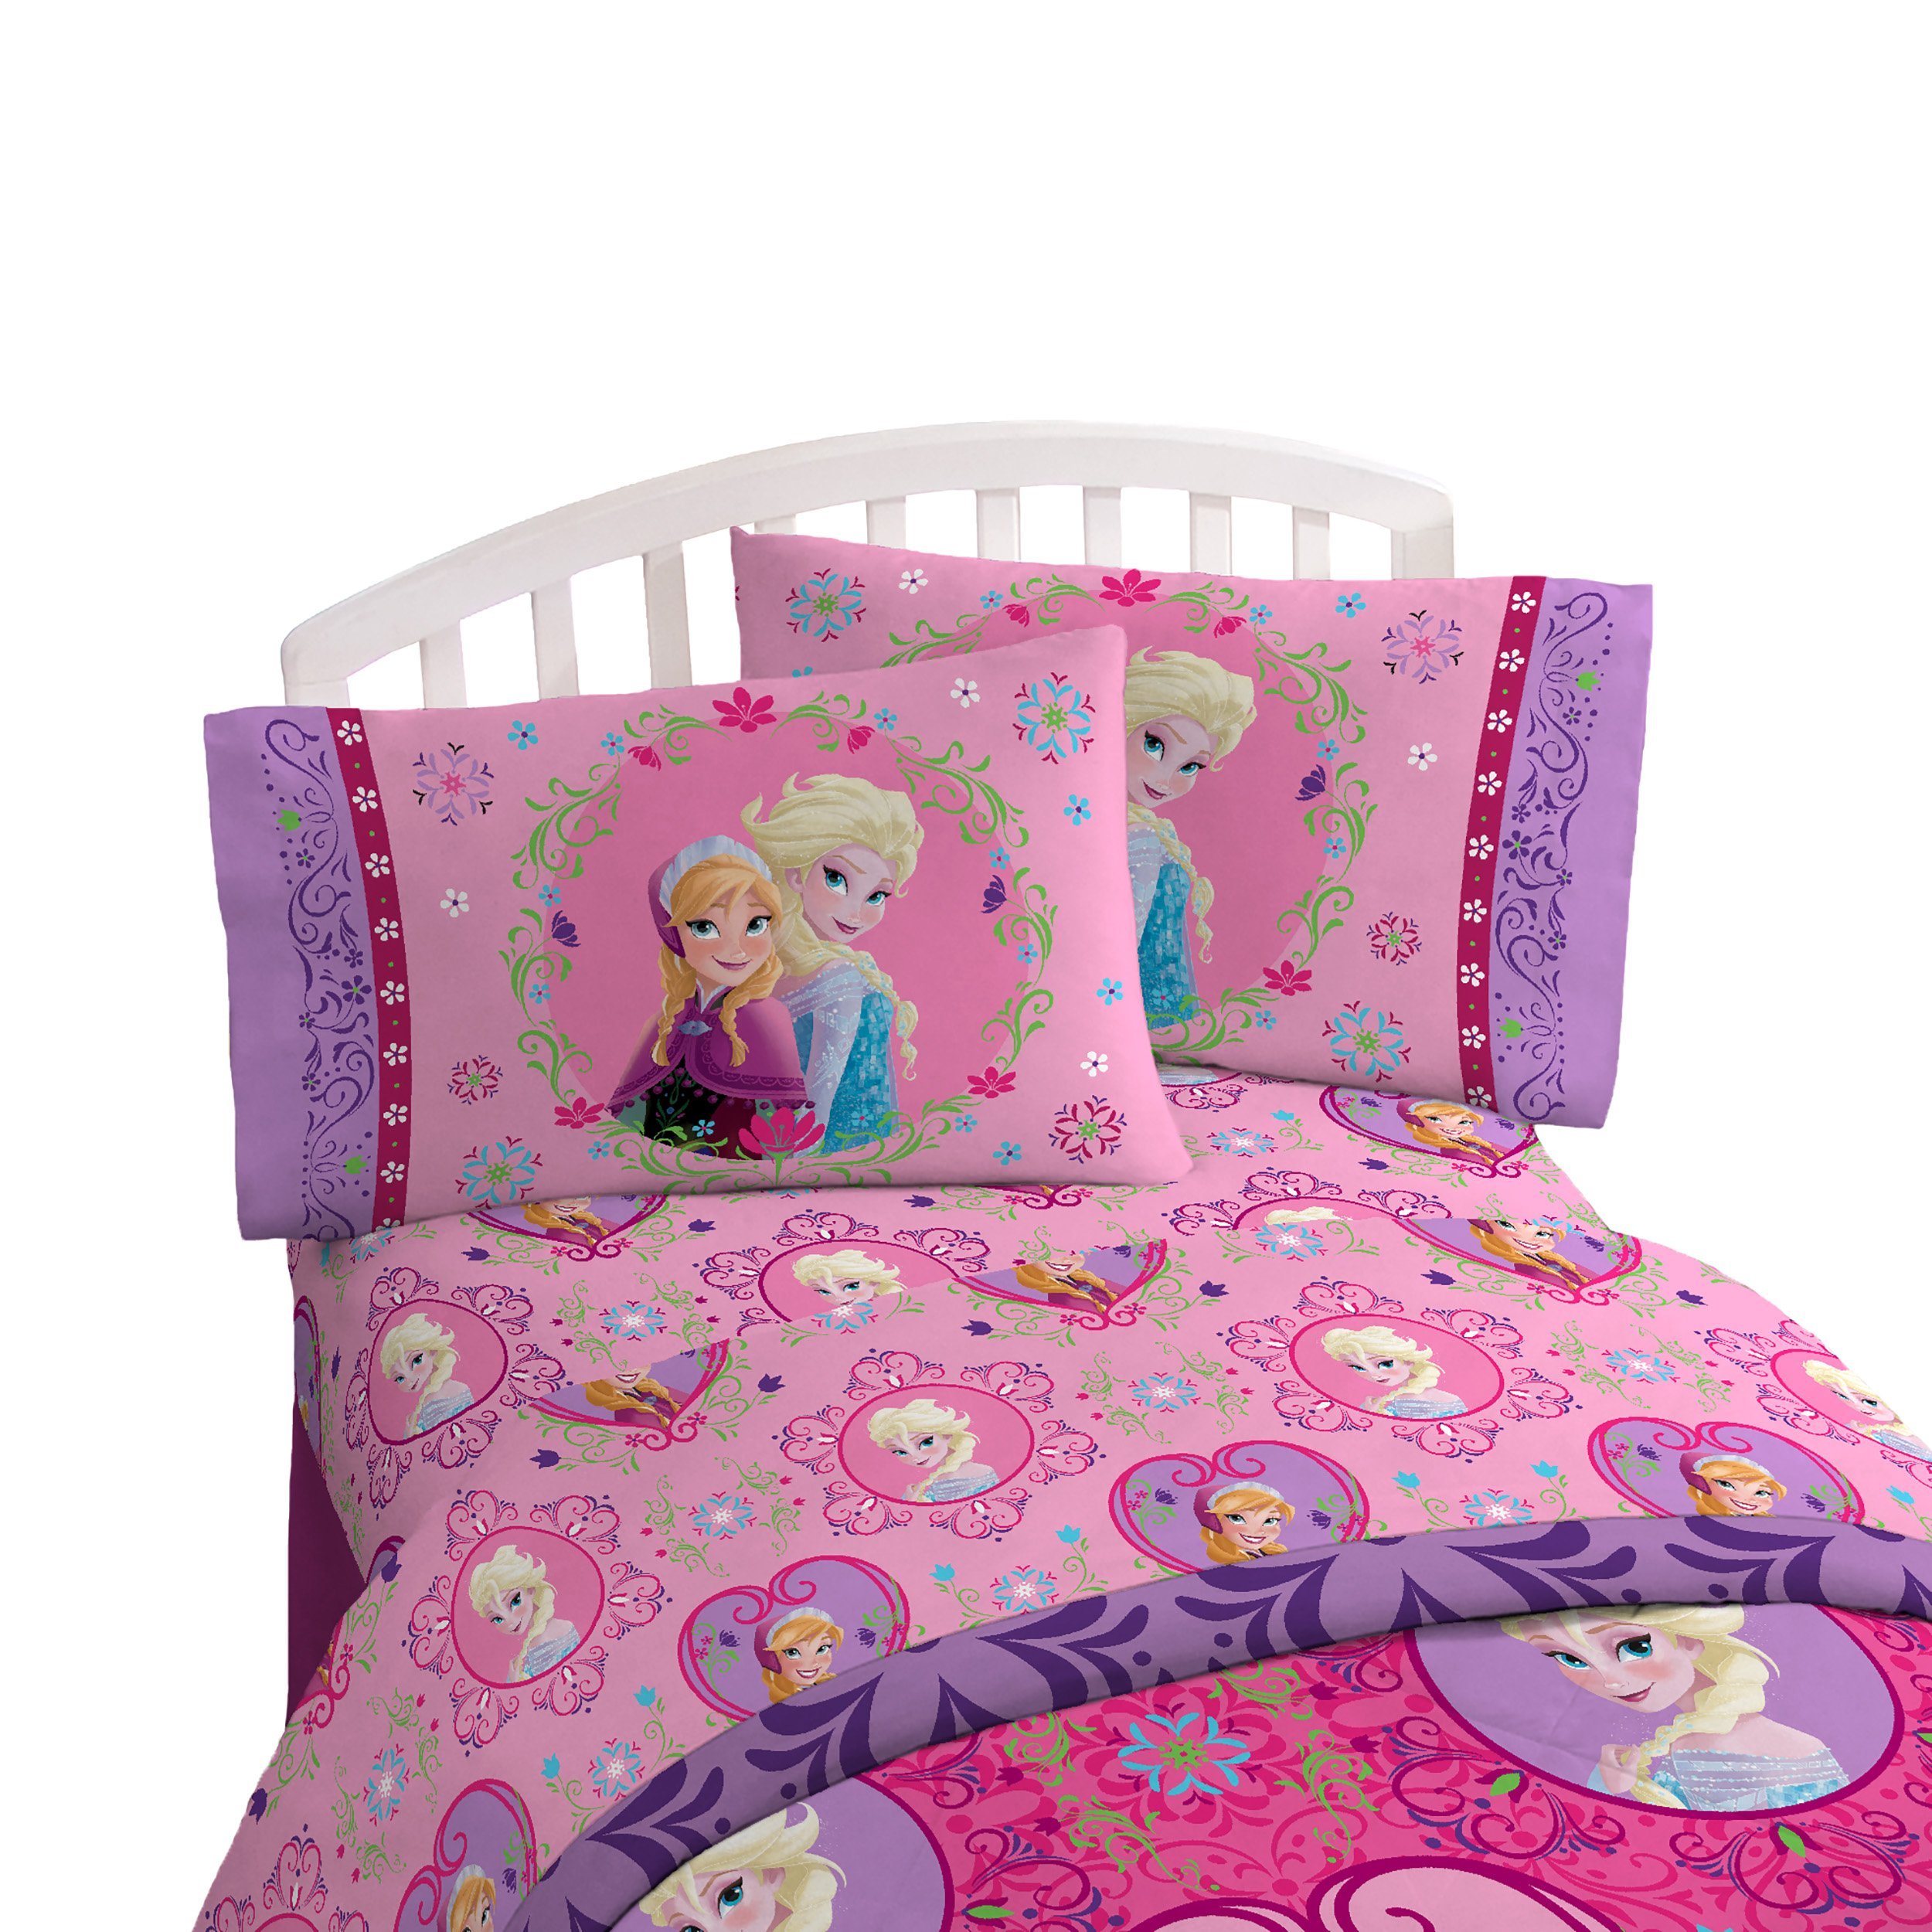 Disney Frozen Friendship 3 Piece Twin Sheet Set by Jay Franco